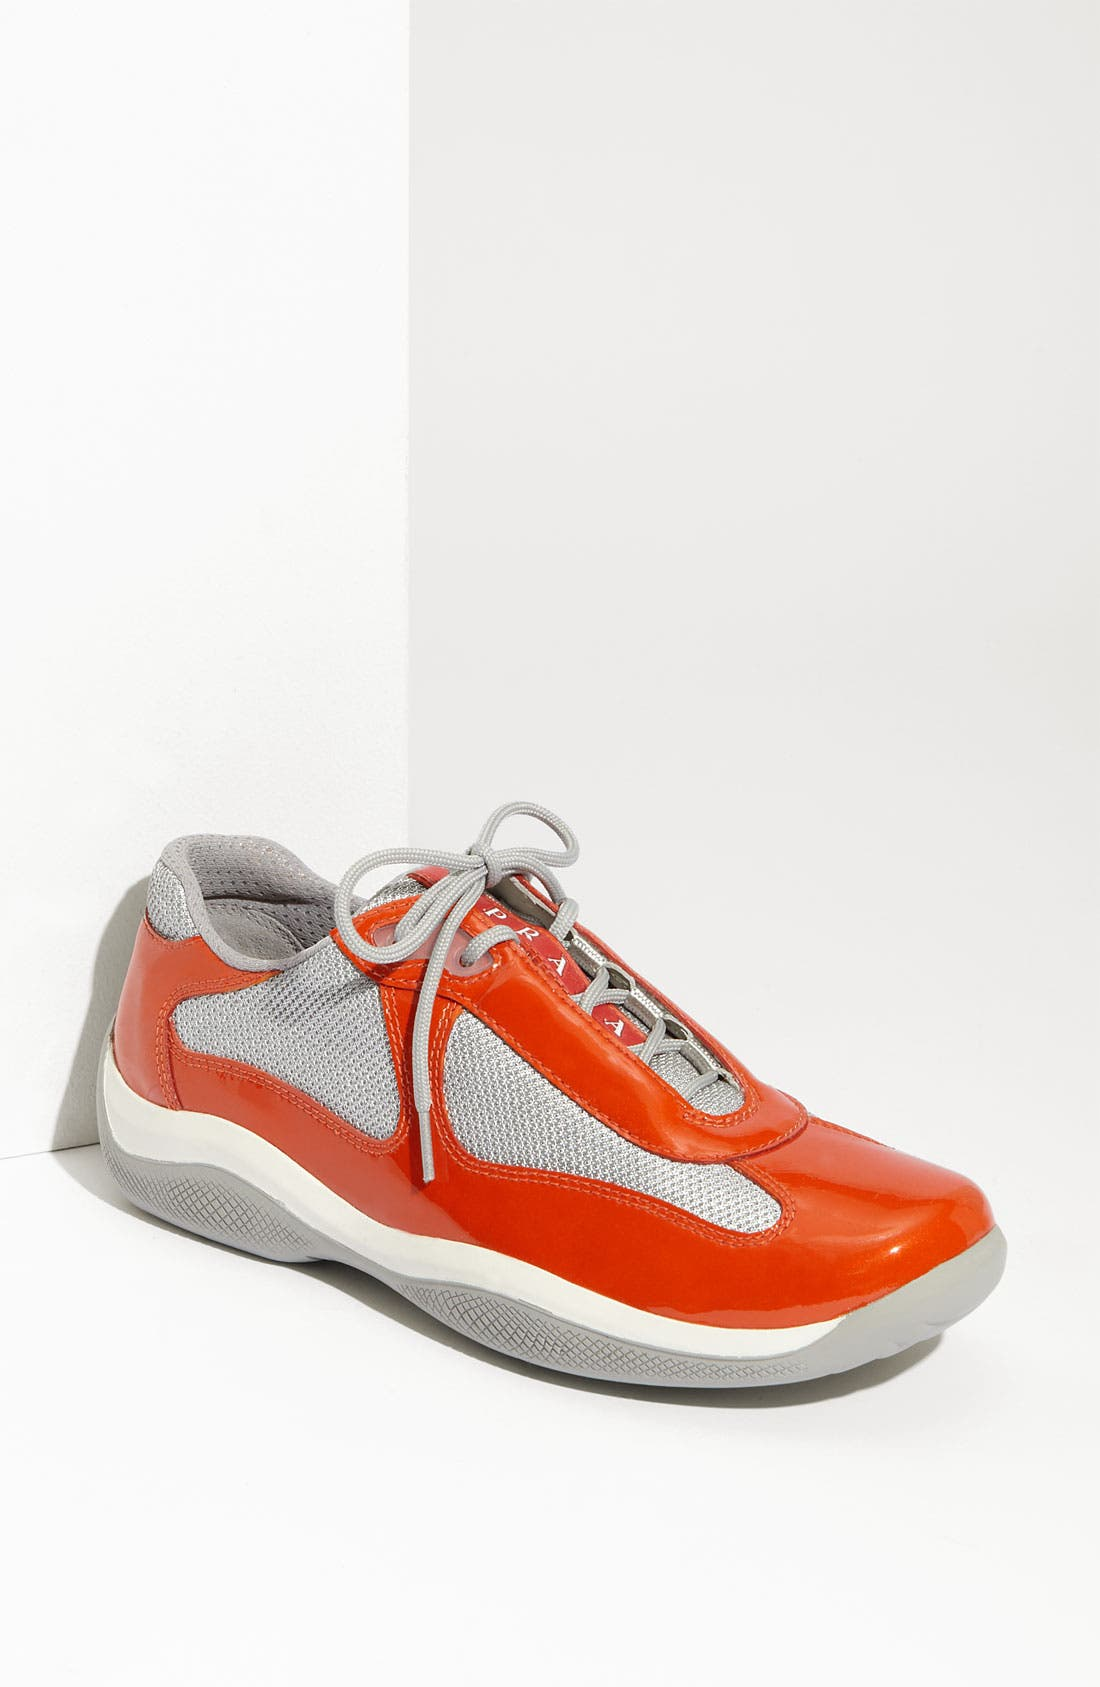 Alternate Image 1 Selected - Prada Patent Leather & Mesh Sneaker